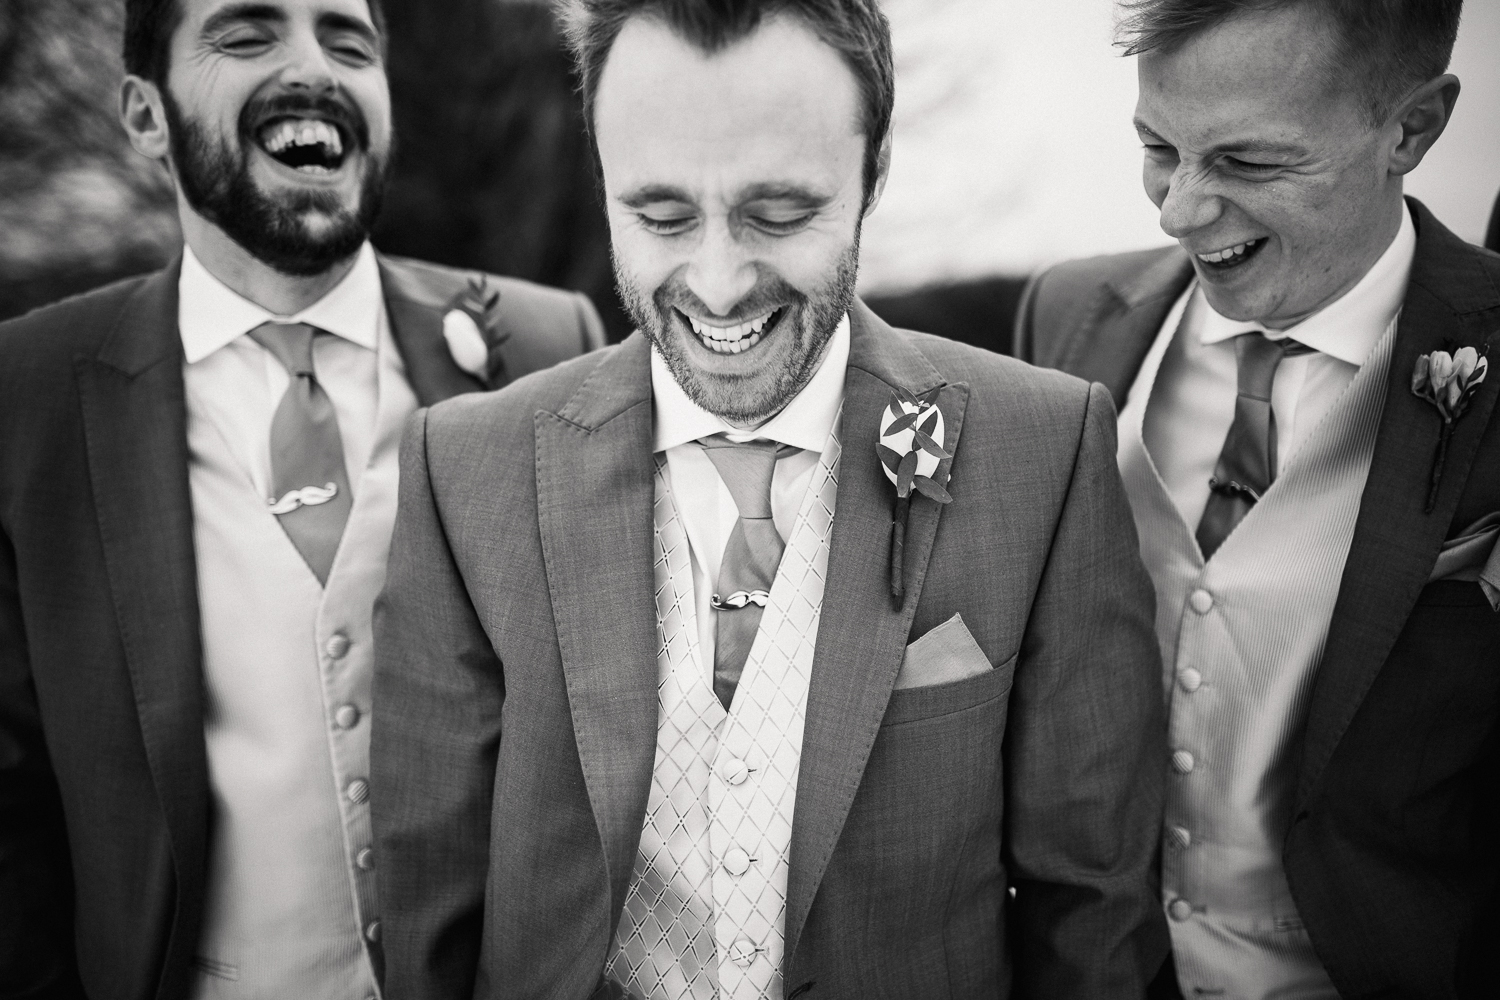 The_Old_Barn_North_Devon_Wedding_Photographer-39.jpg